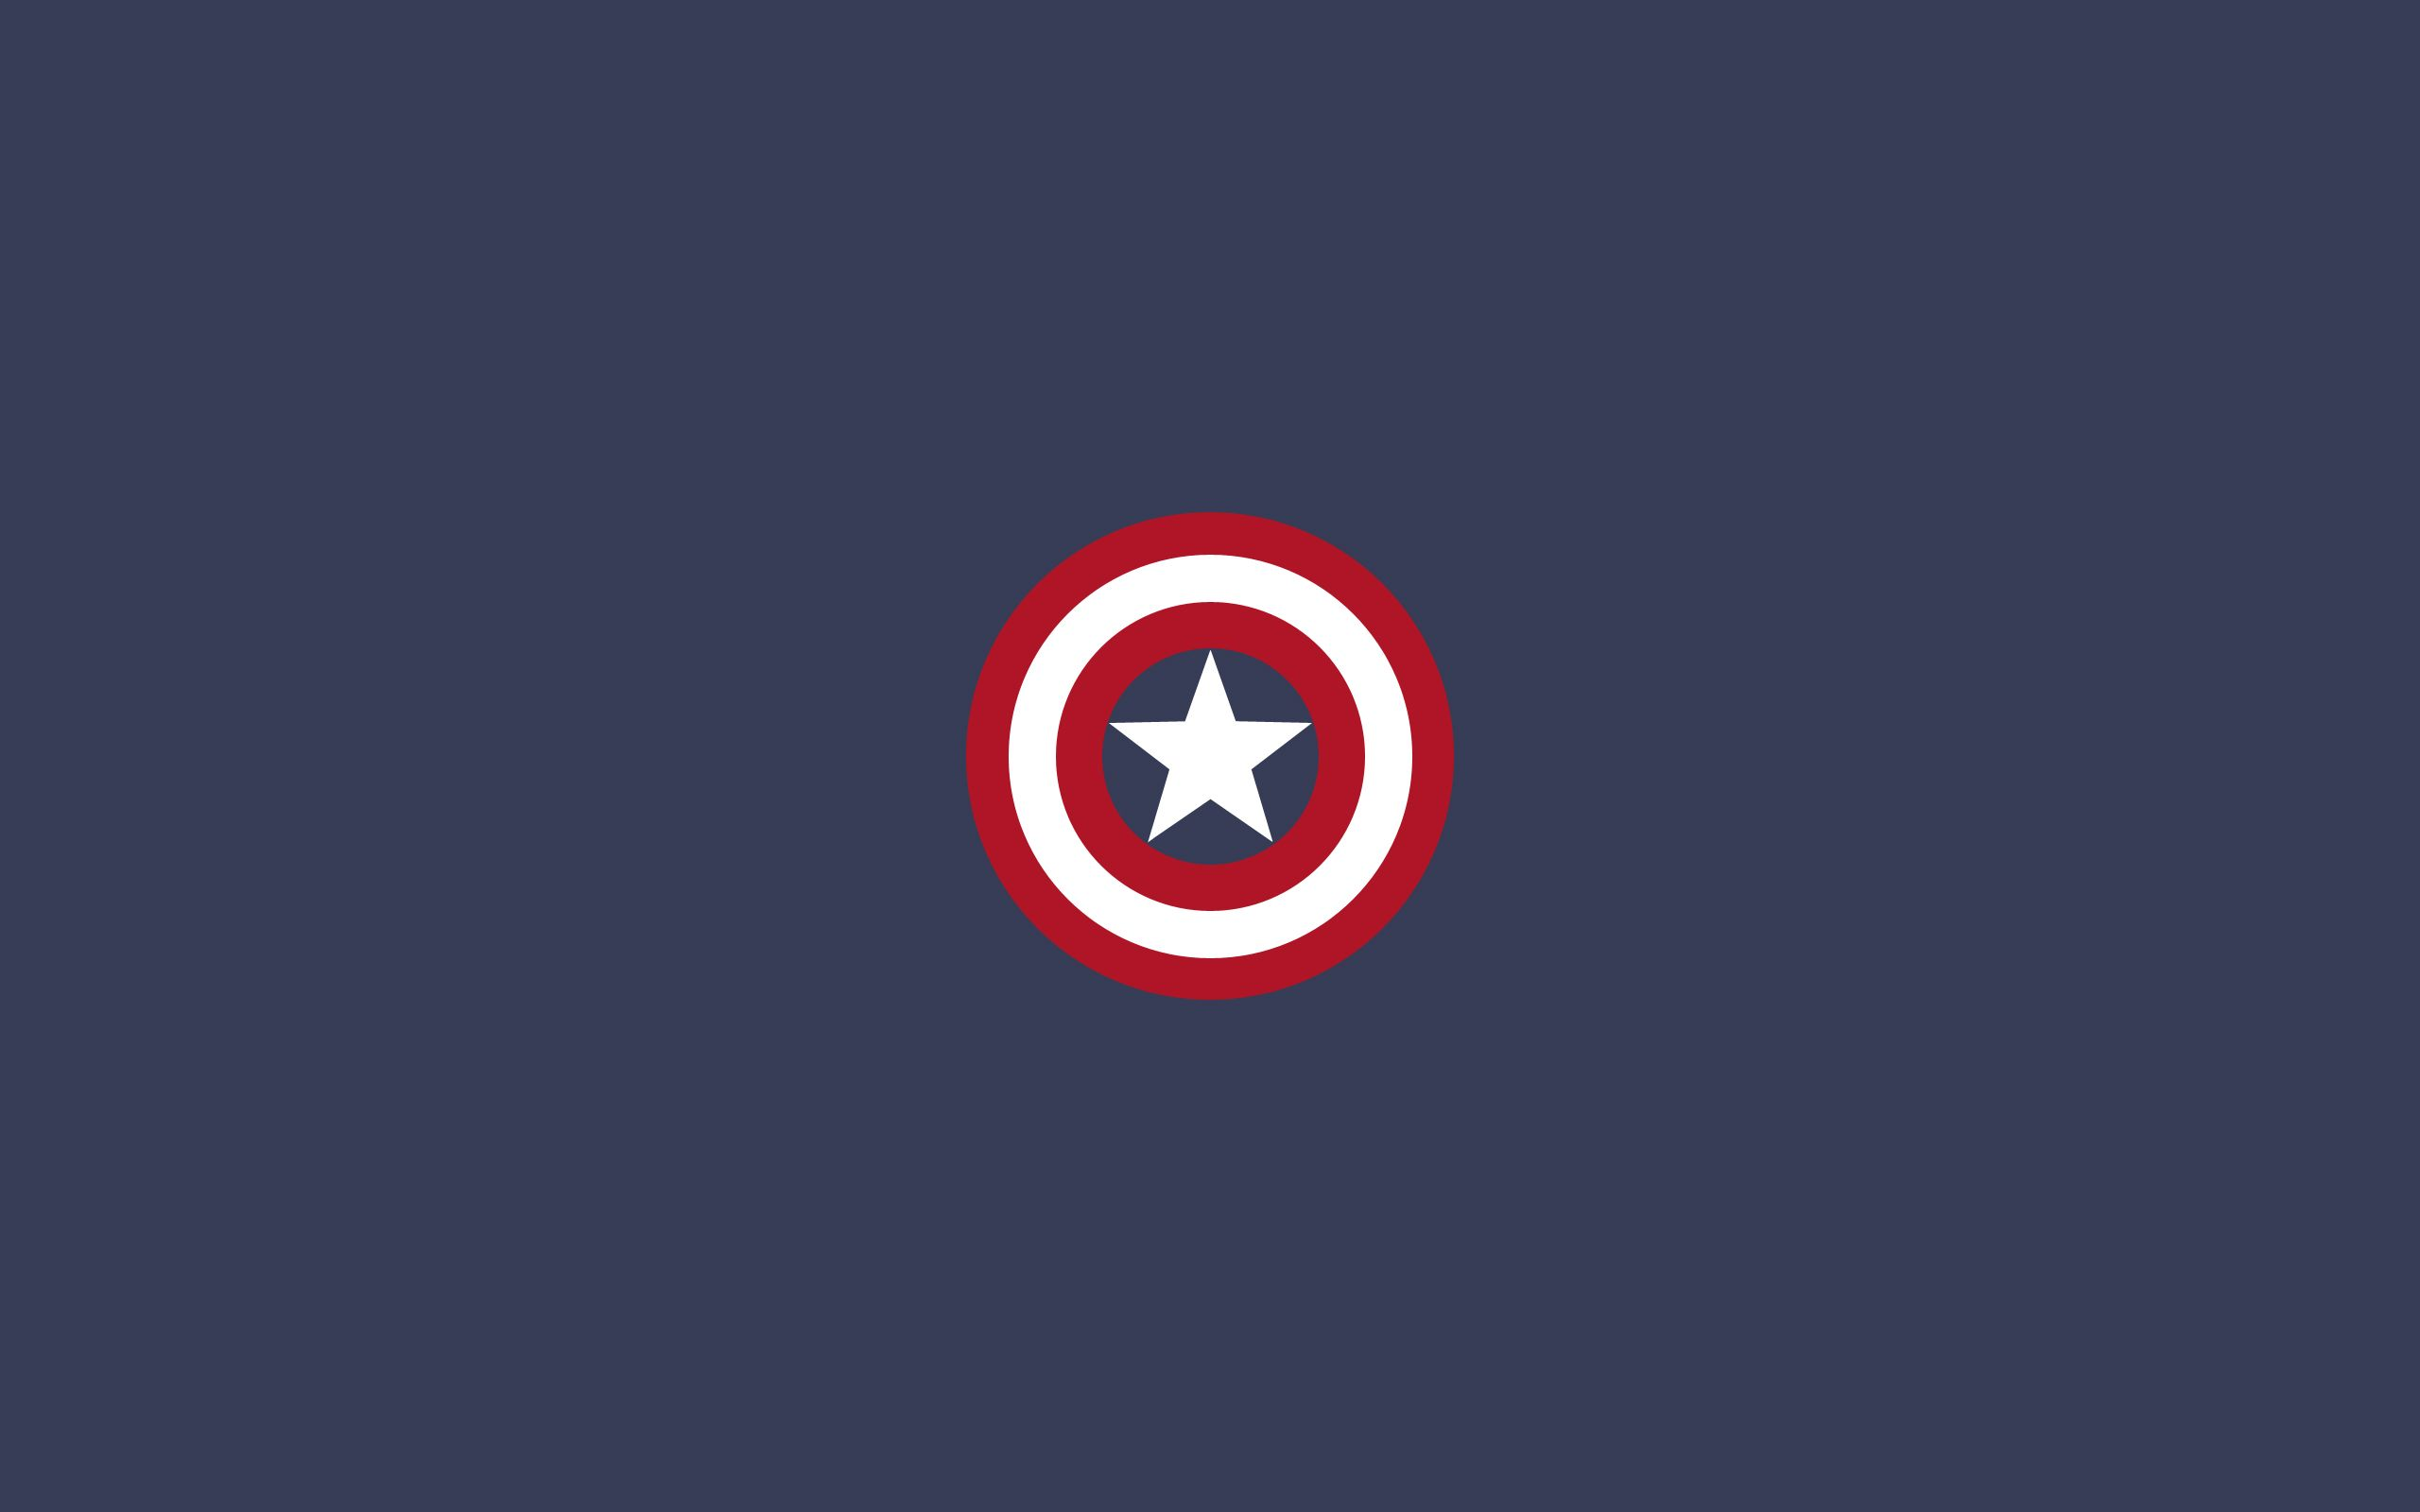 Good Wallpaper High Resolution Captain America - deaf7e0d5400848ce20732dc28800283  Image_77226.jpg